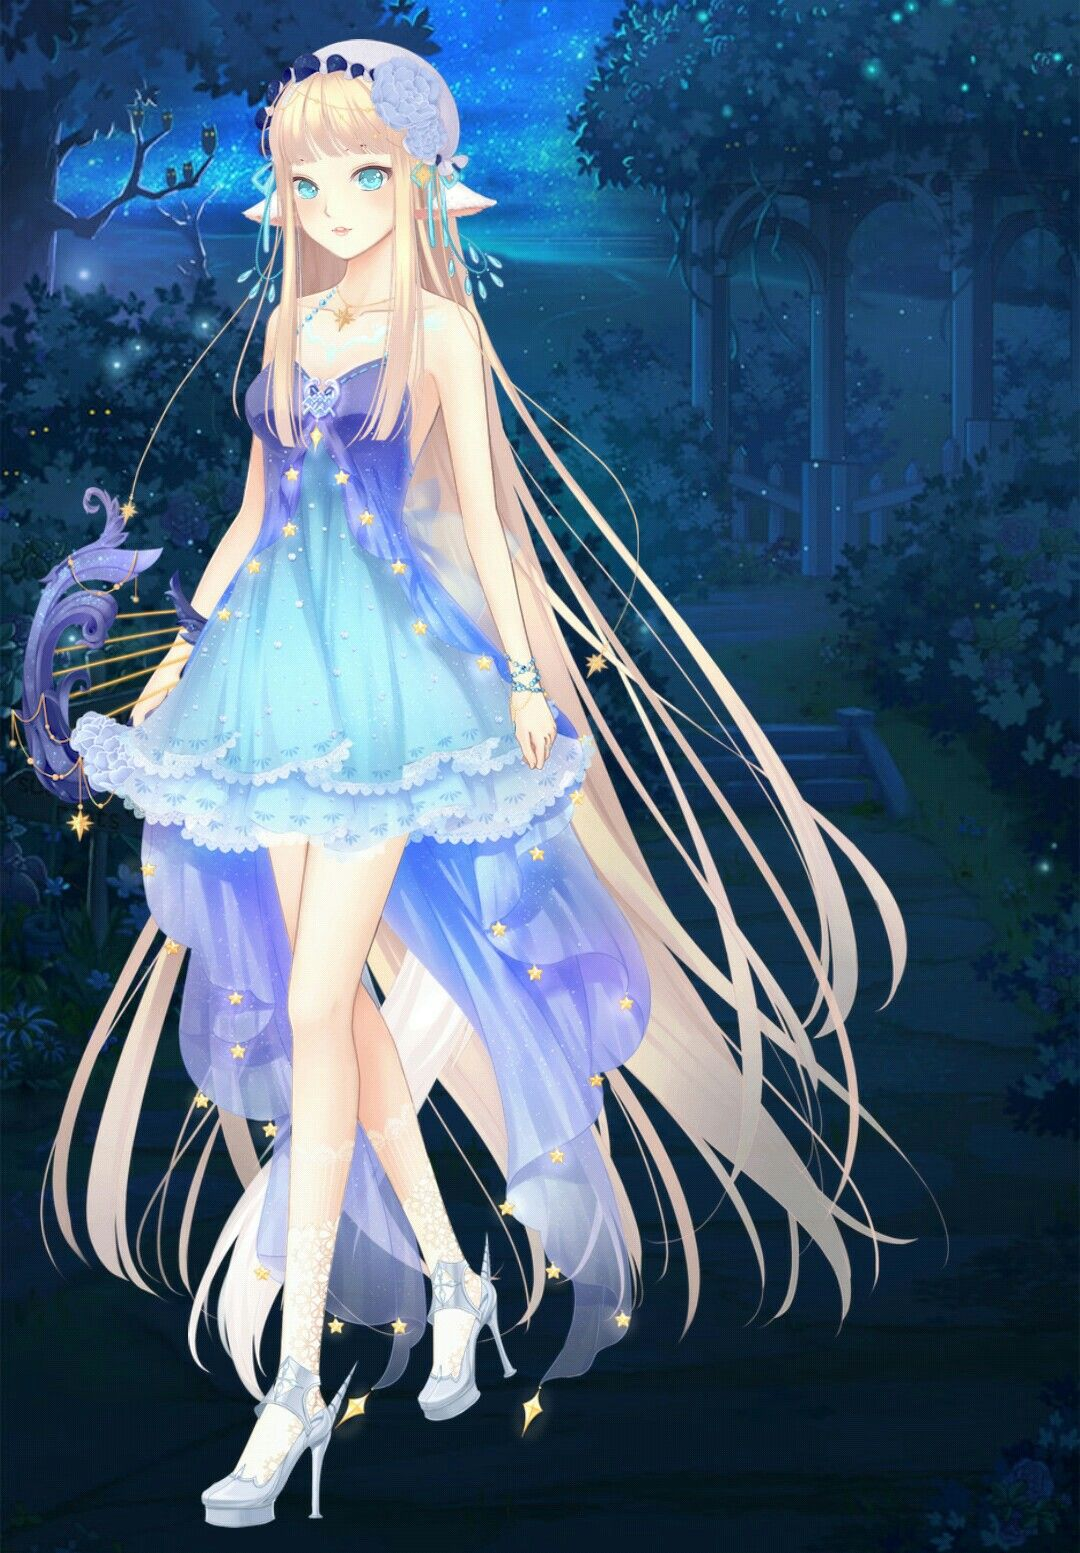 Dress up diary forest - Anime Chibi